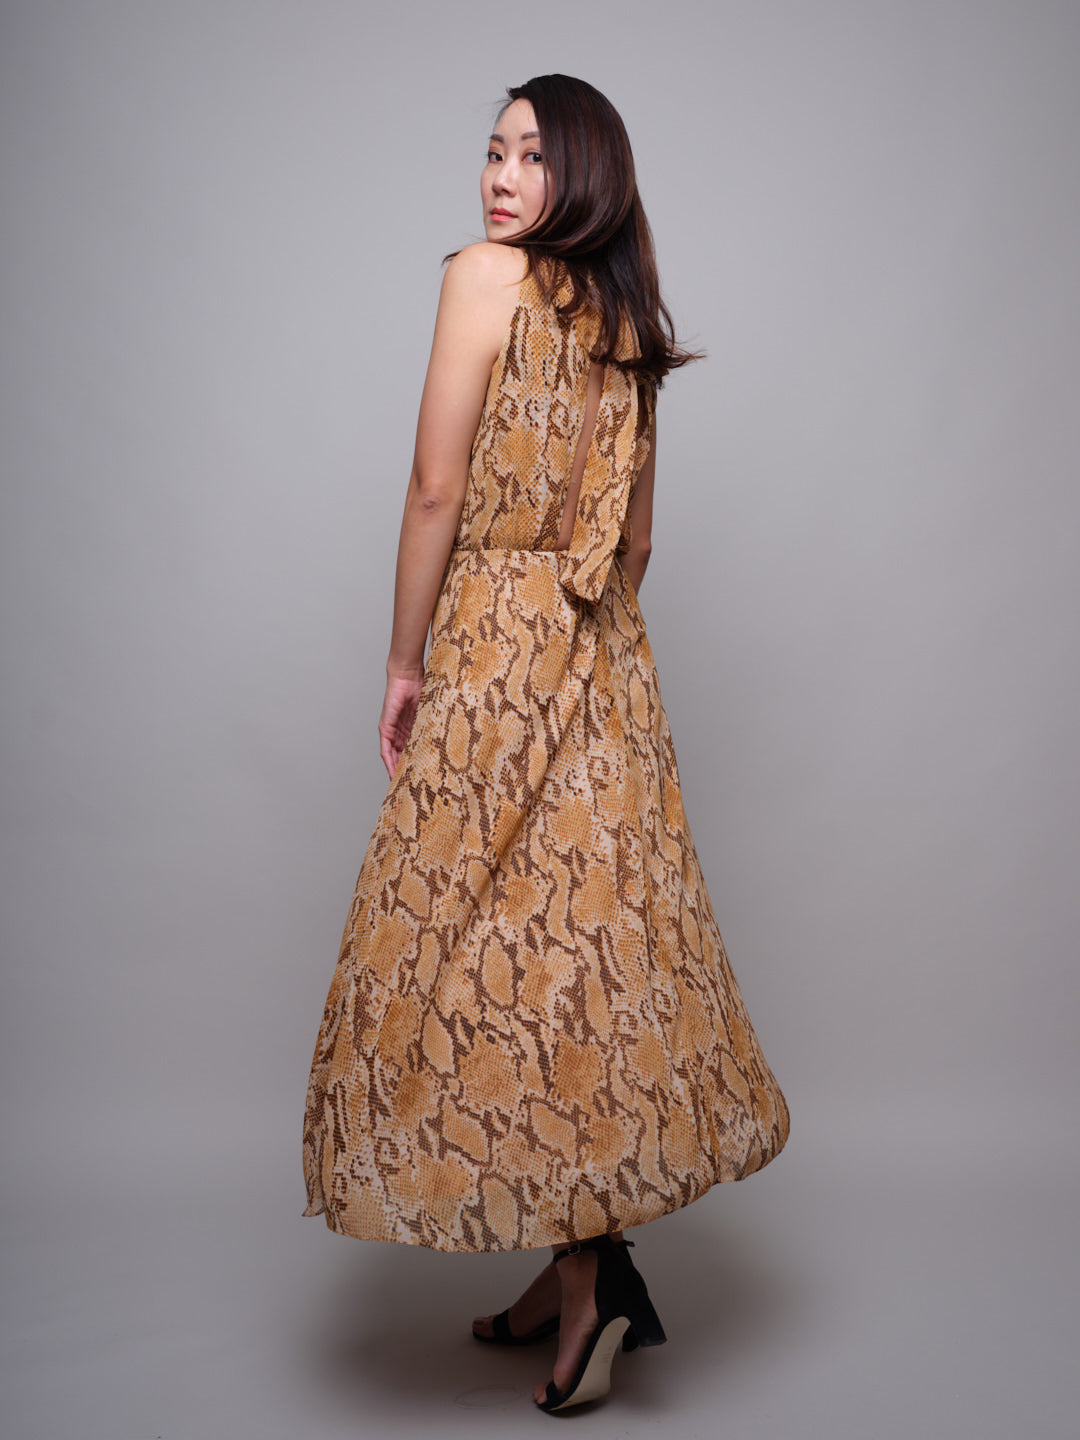 The Snake Print Dress - capsulebyedith